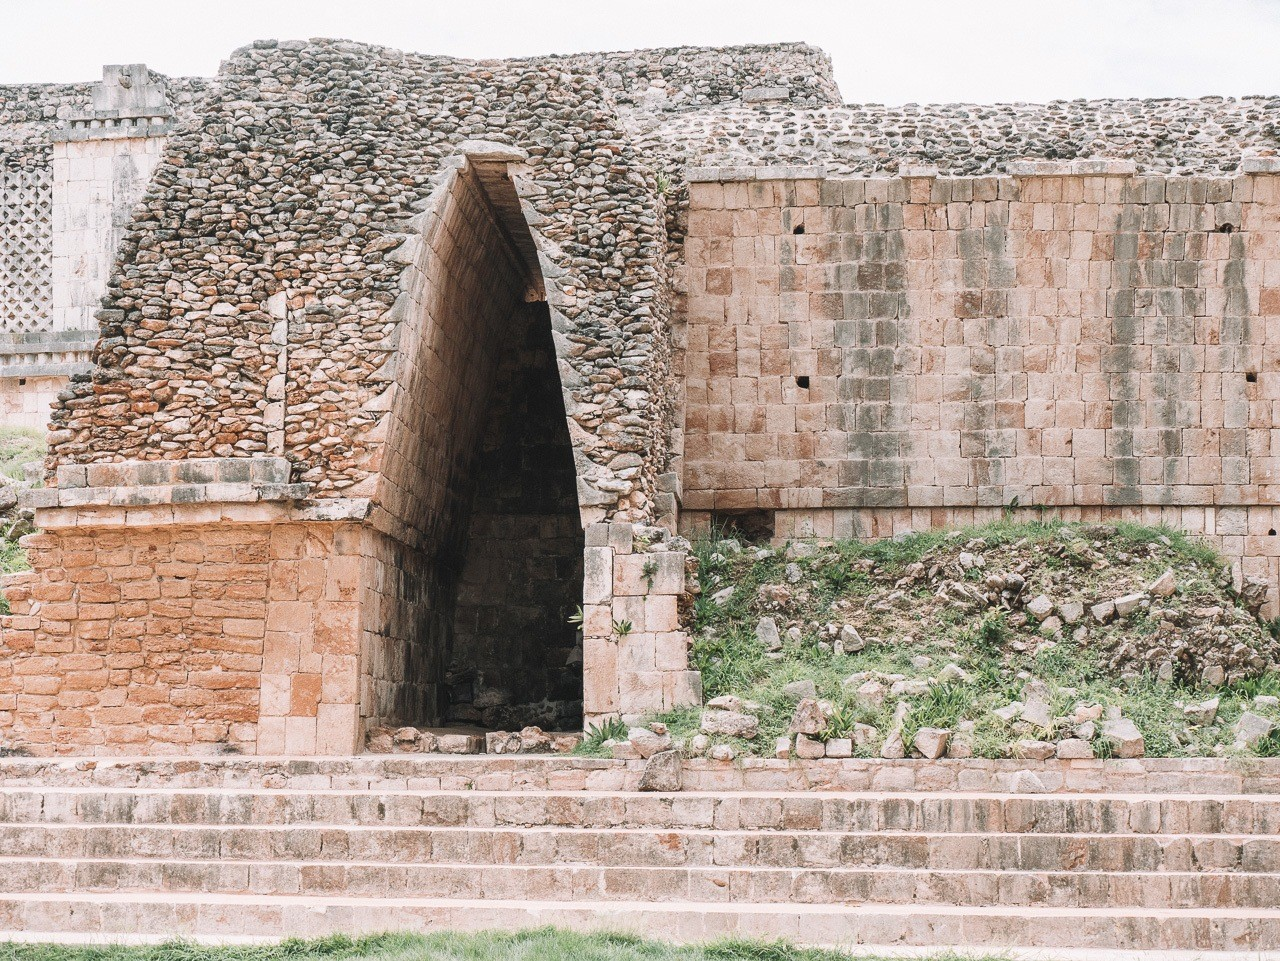 Day Trip from Merida to Uxmal